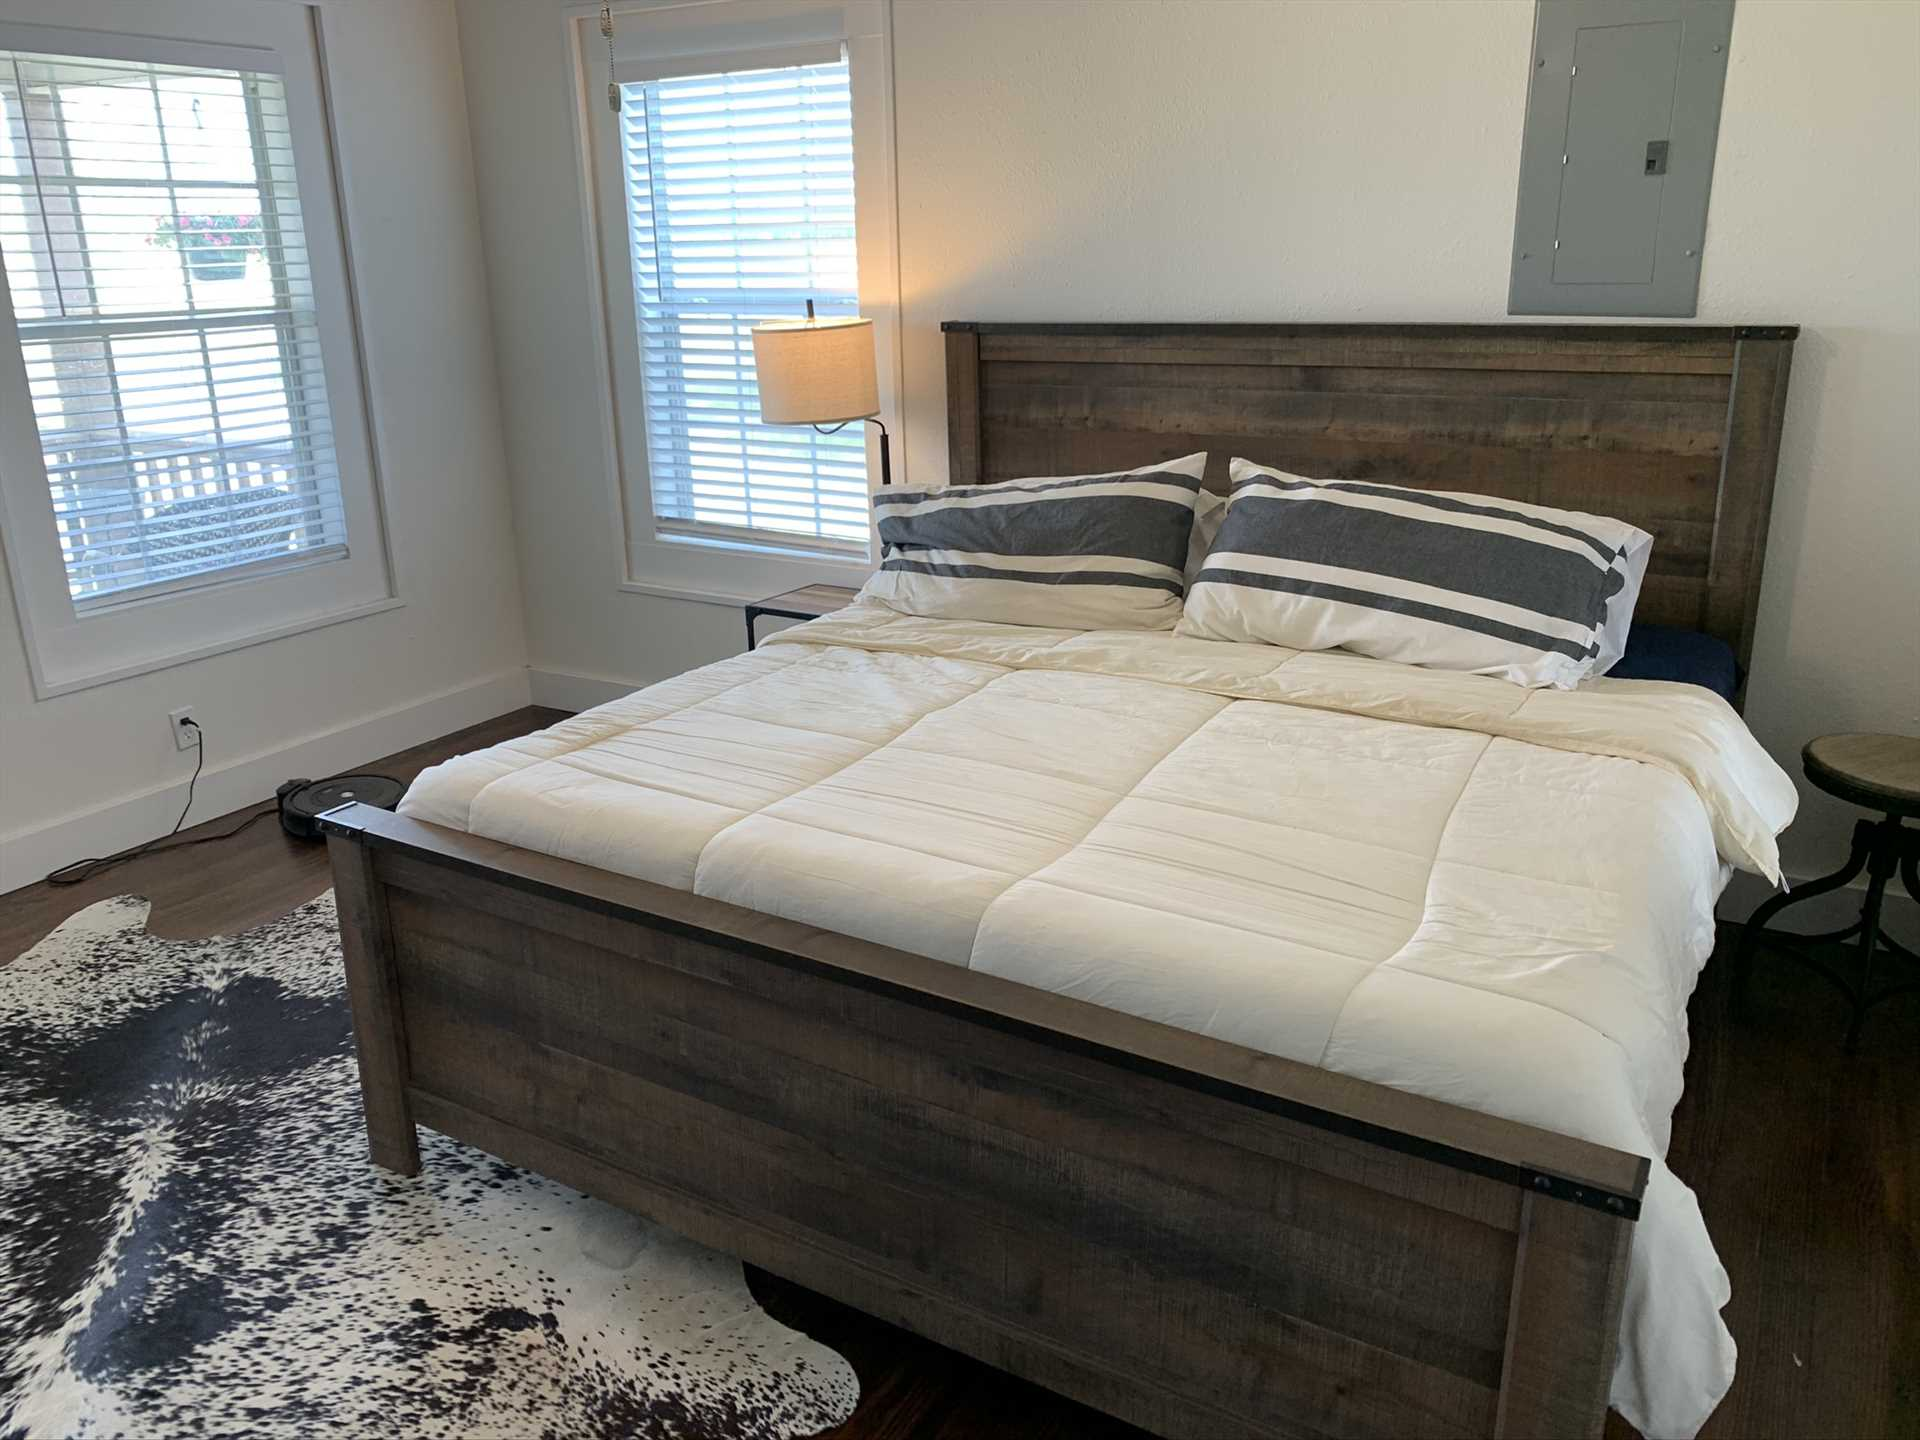 Comforting natural light awakens you in the master bedroom, outfitted with a comfy king-sized bed. Clean and fresh bed and bath linens are all part of your stay!